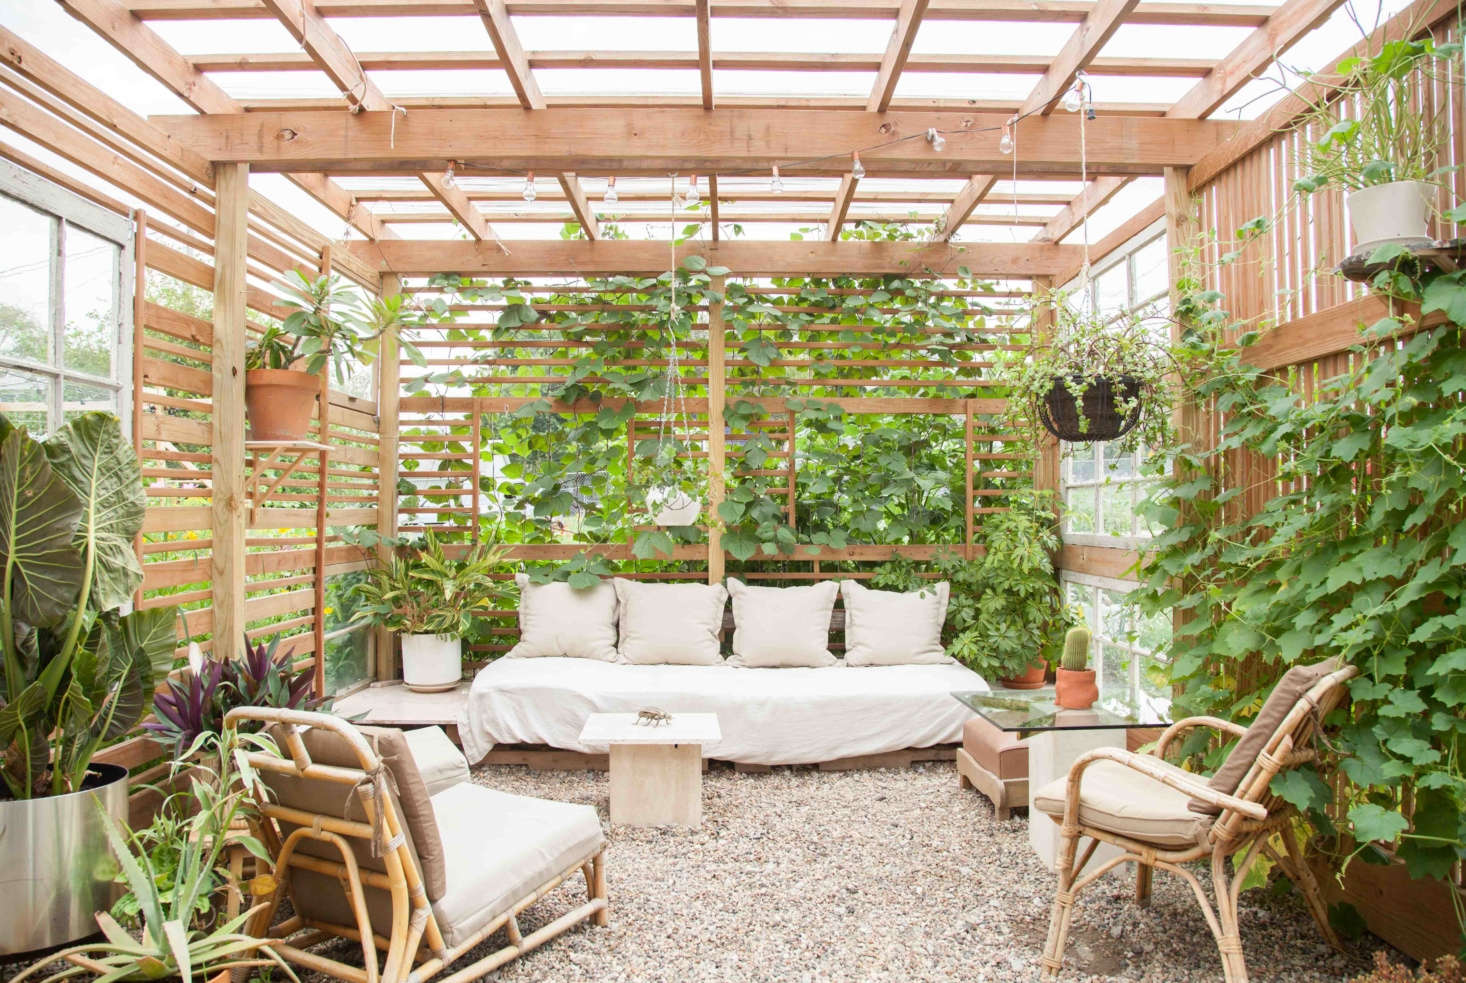 Andrew Tatreau of Omaha, Nebraska, built a DIY cabana in his shadeless backyard to provide a respite from the sun for both people and plants; he won our  Best Amateur Landscape award for the project.